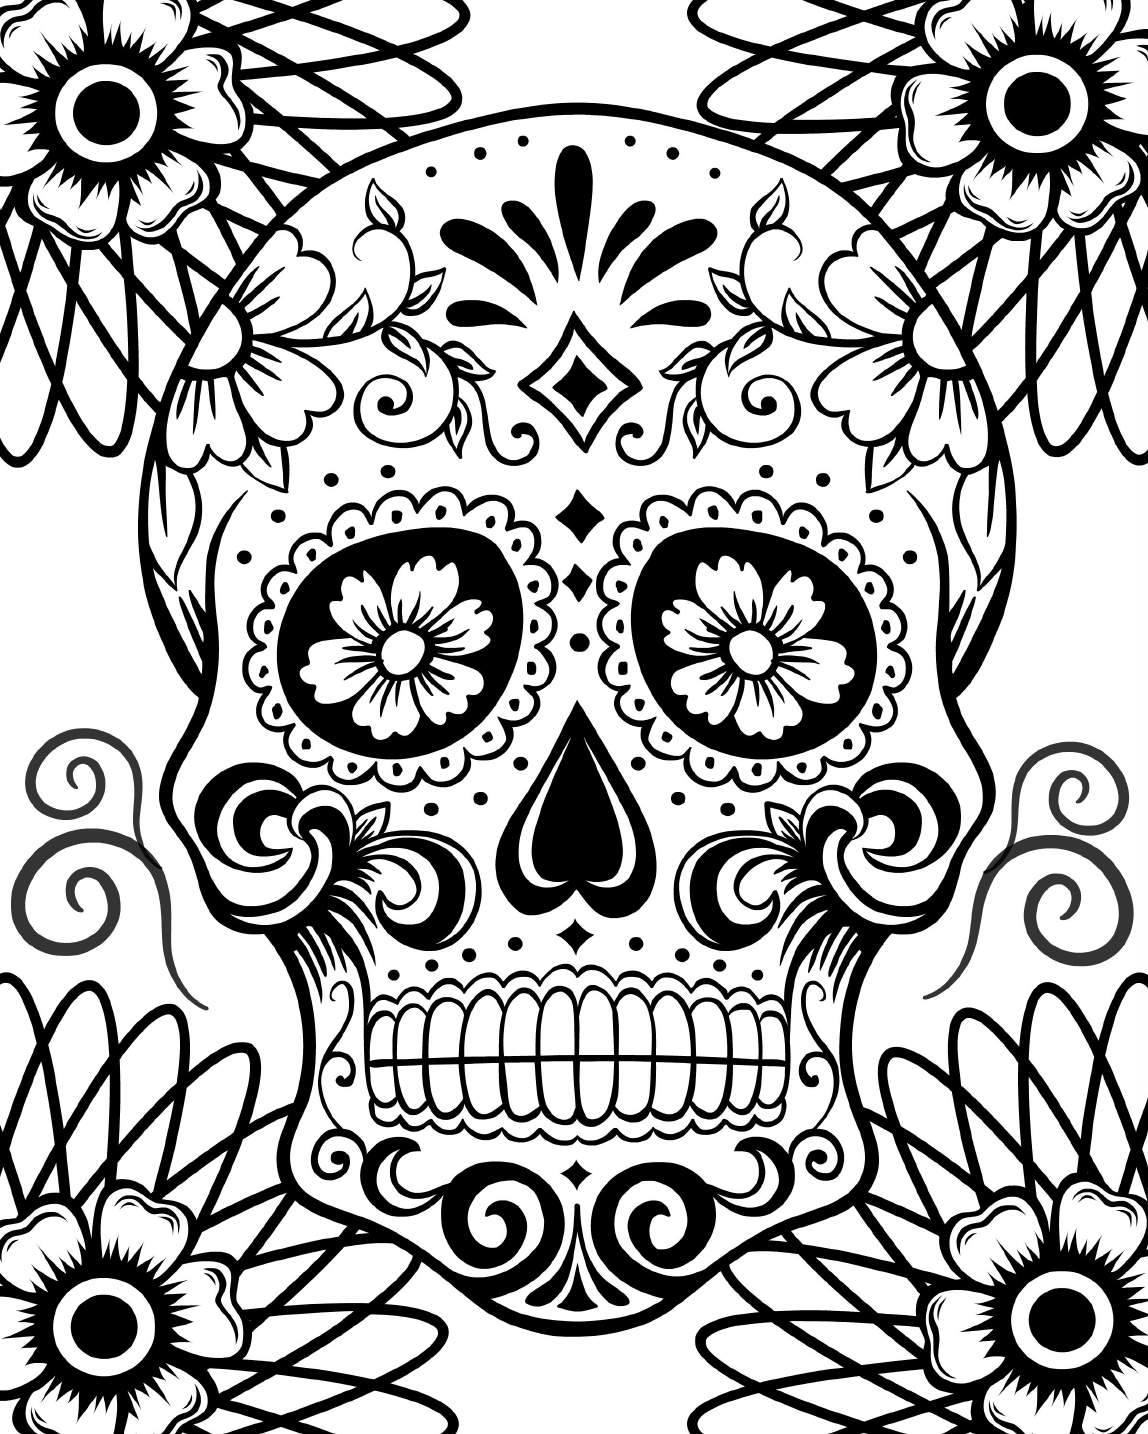 day of the dead printable coloring pages free printable day of the dead coloring pages best day coloring of pages the printable dead